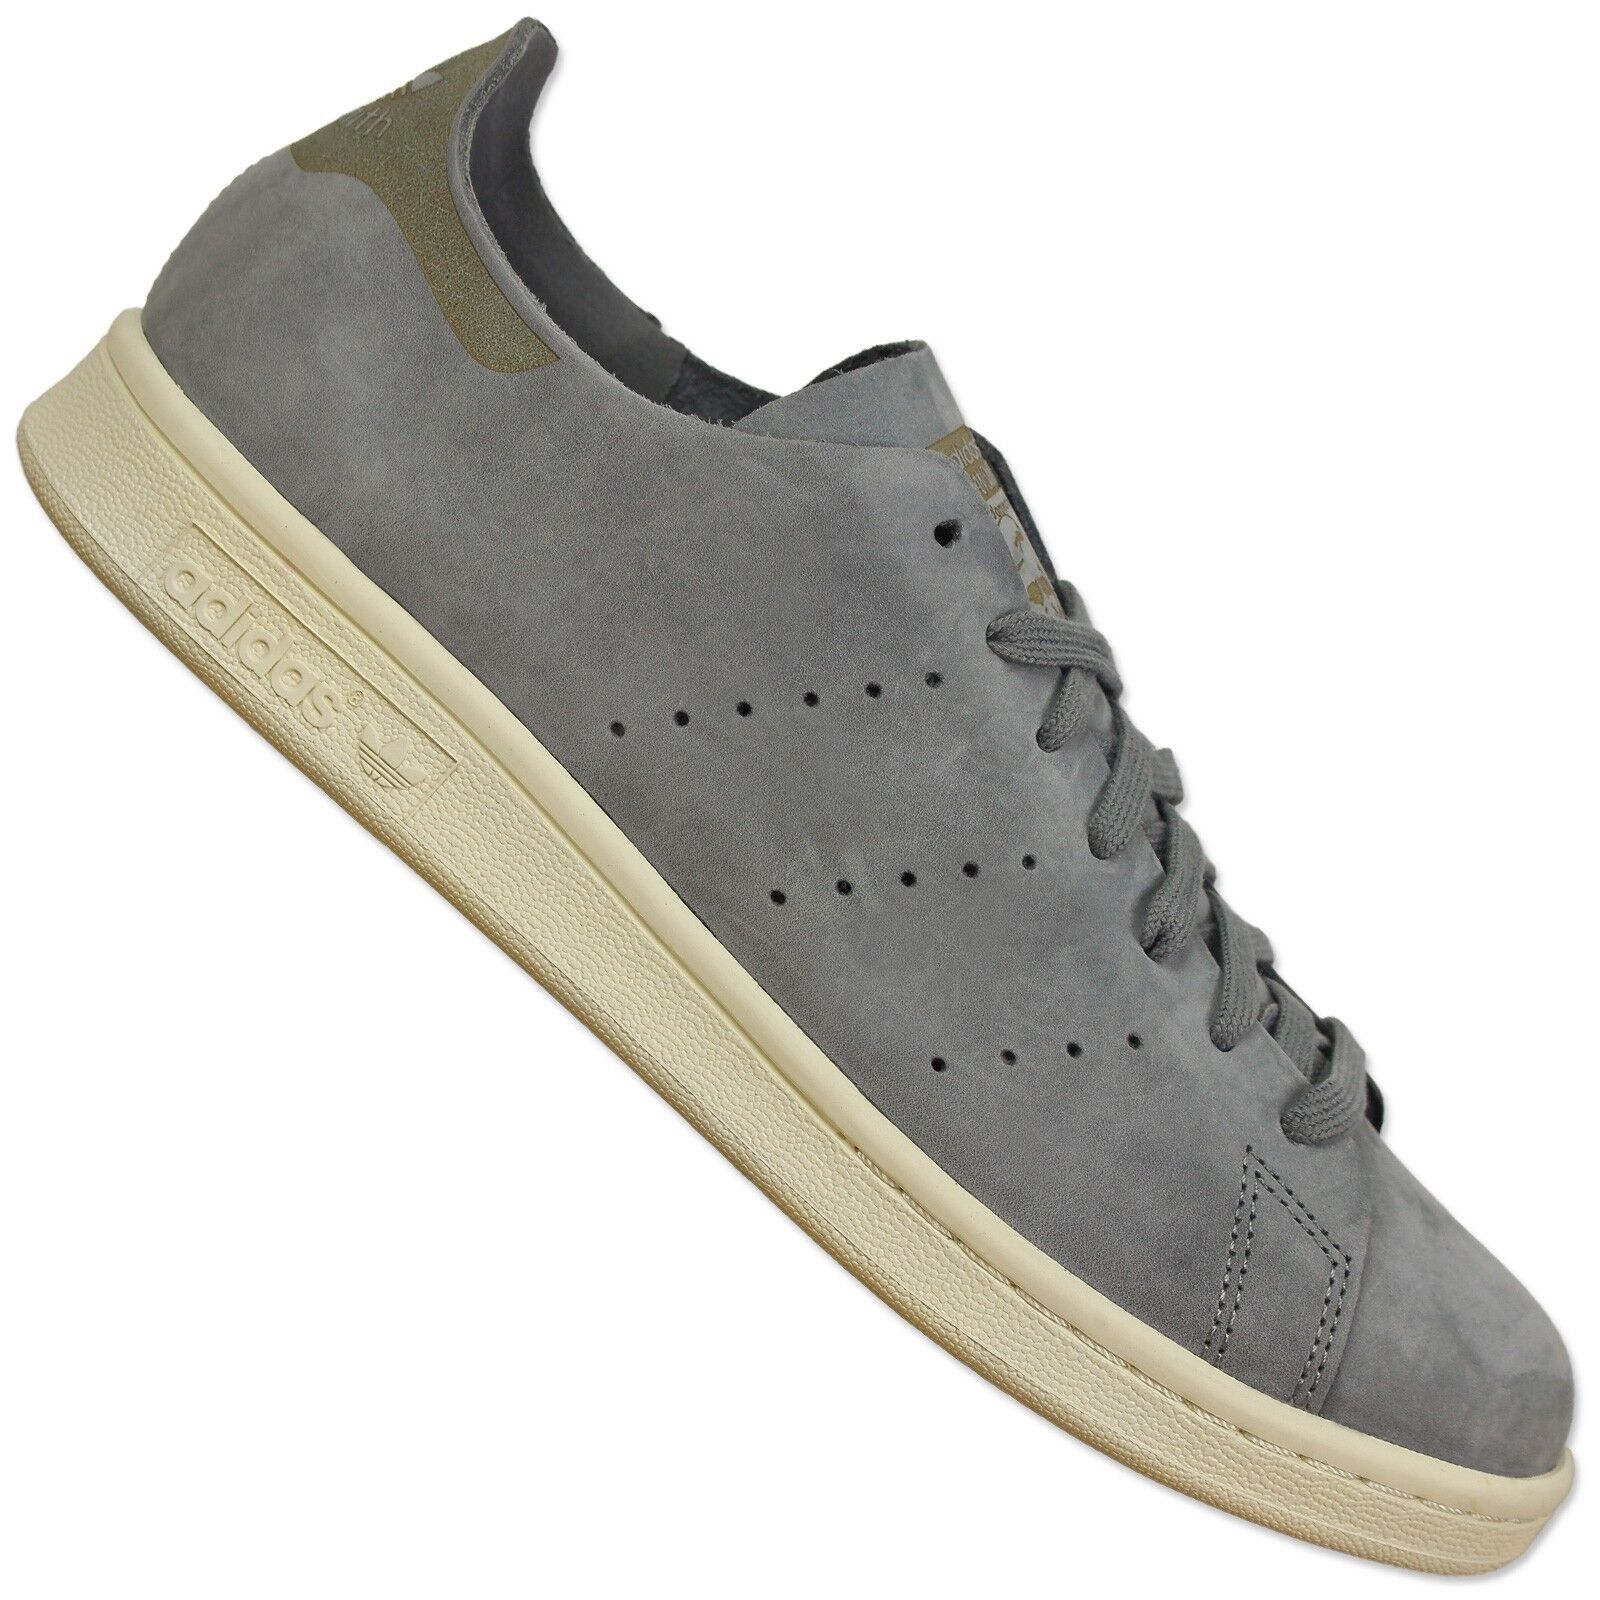 ADIDAS ORIGINALS STAN SMITH OP CLEAN LEDER SNEAKER S79465 GRAU SCHUHE GREY